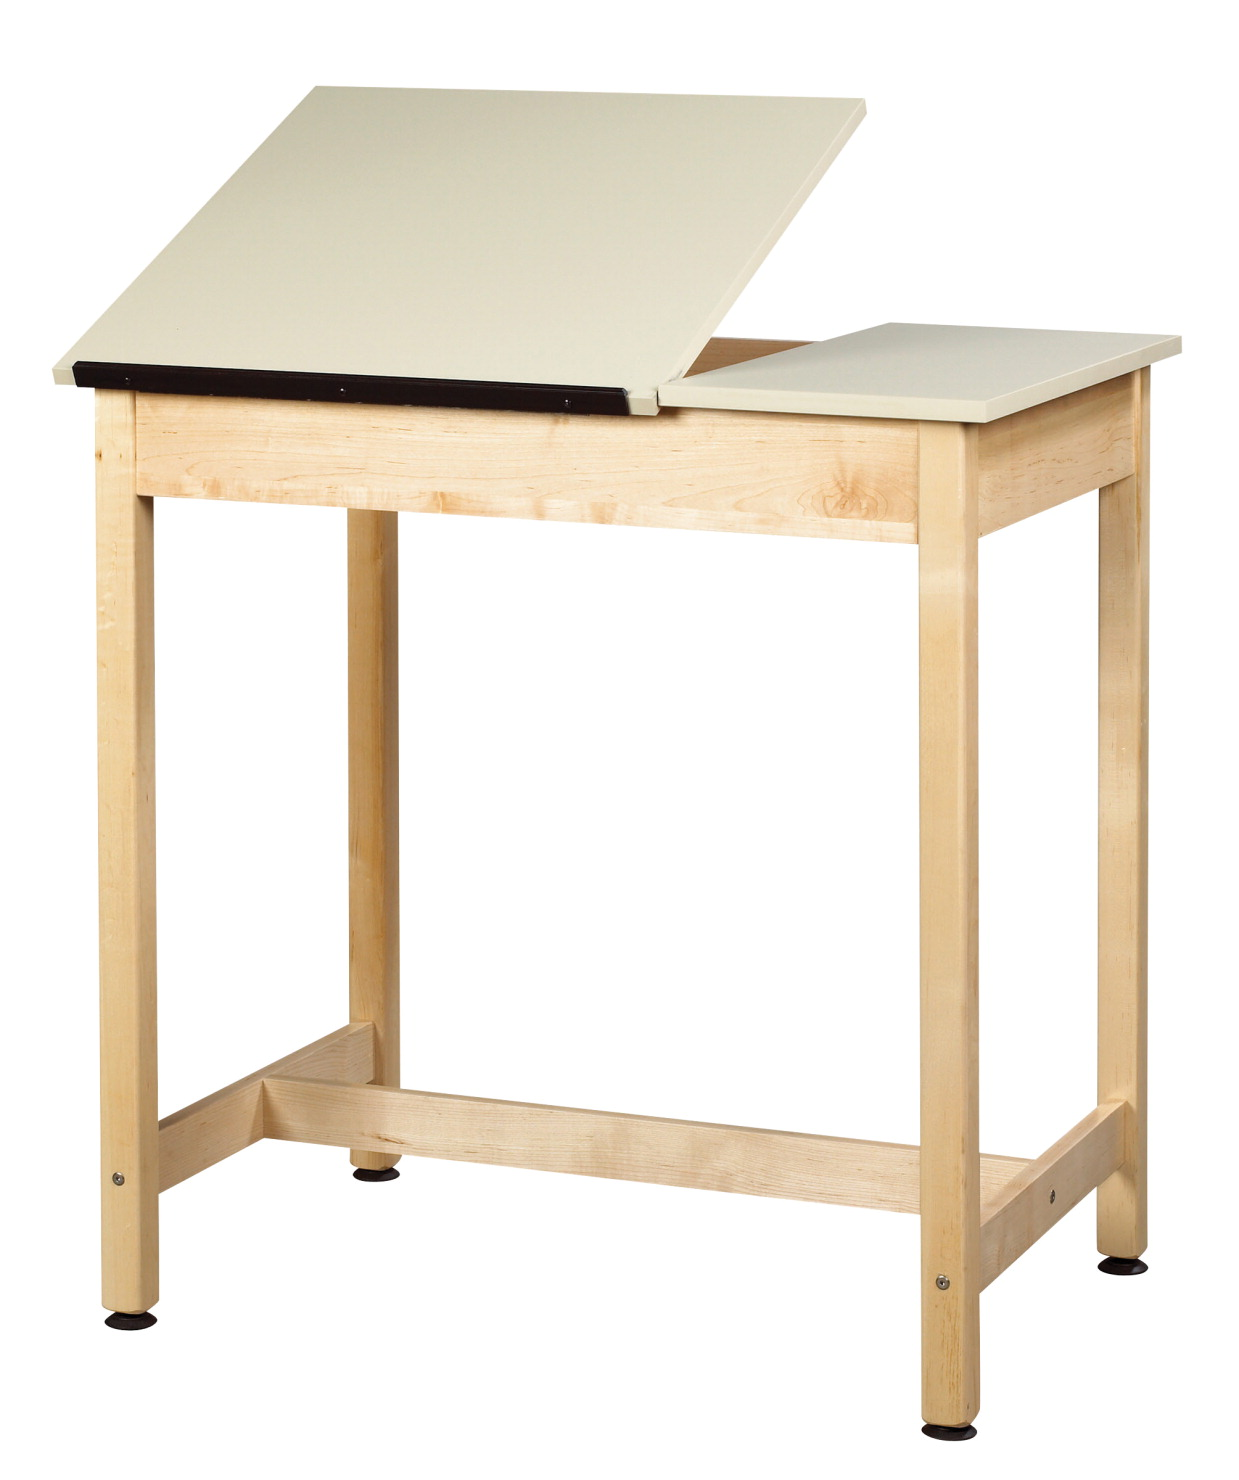 Diversified Woodcrafts 2-Piece Drafting Table, 36 x 24 x 36 Inches, Maple and Plastic